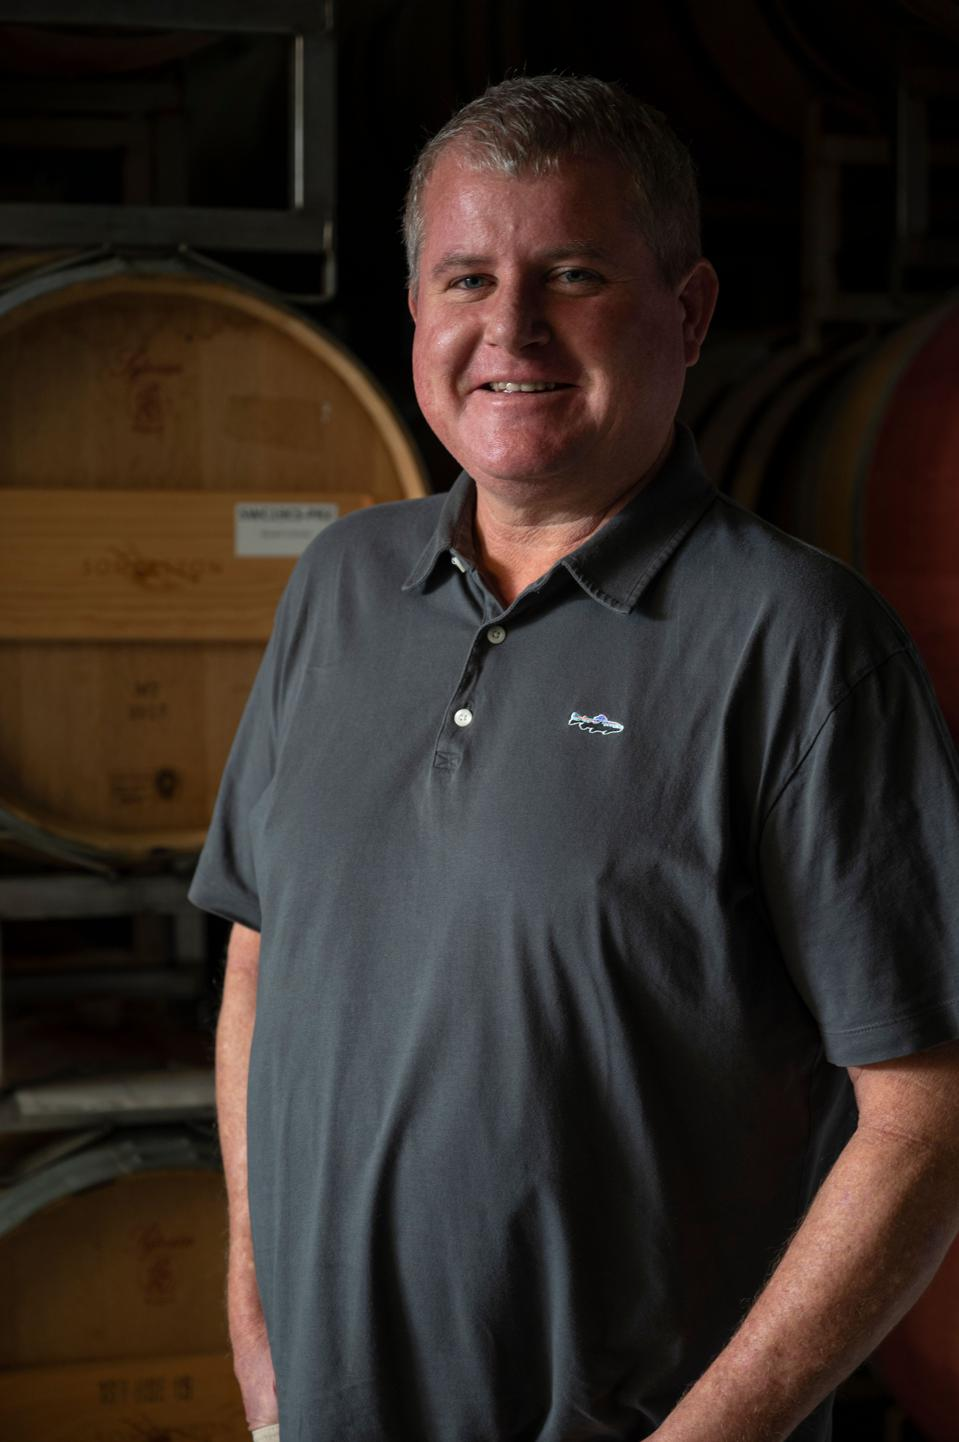 Craig Becker general manager, co-founder and director of winemaking of Somerston Estate in Napa Valley